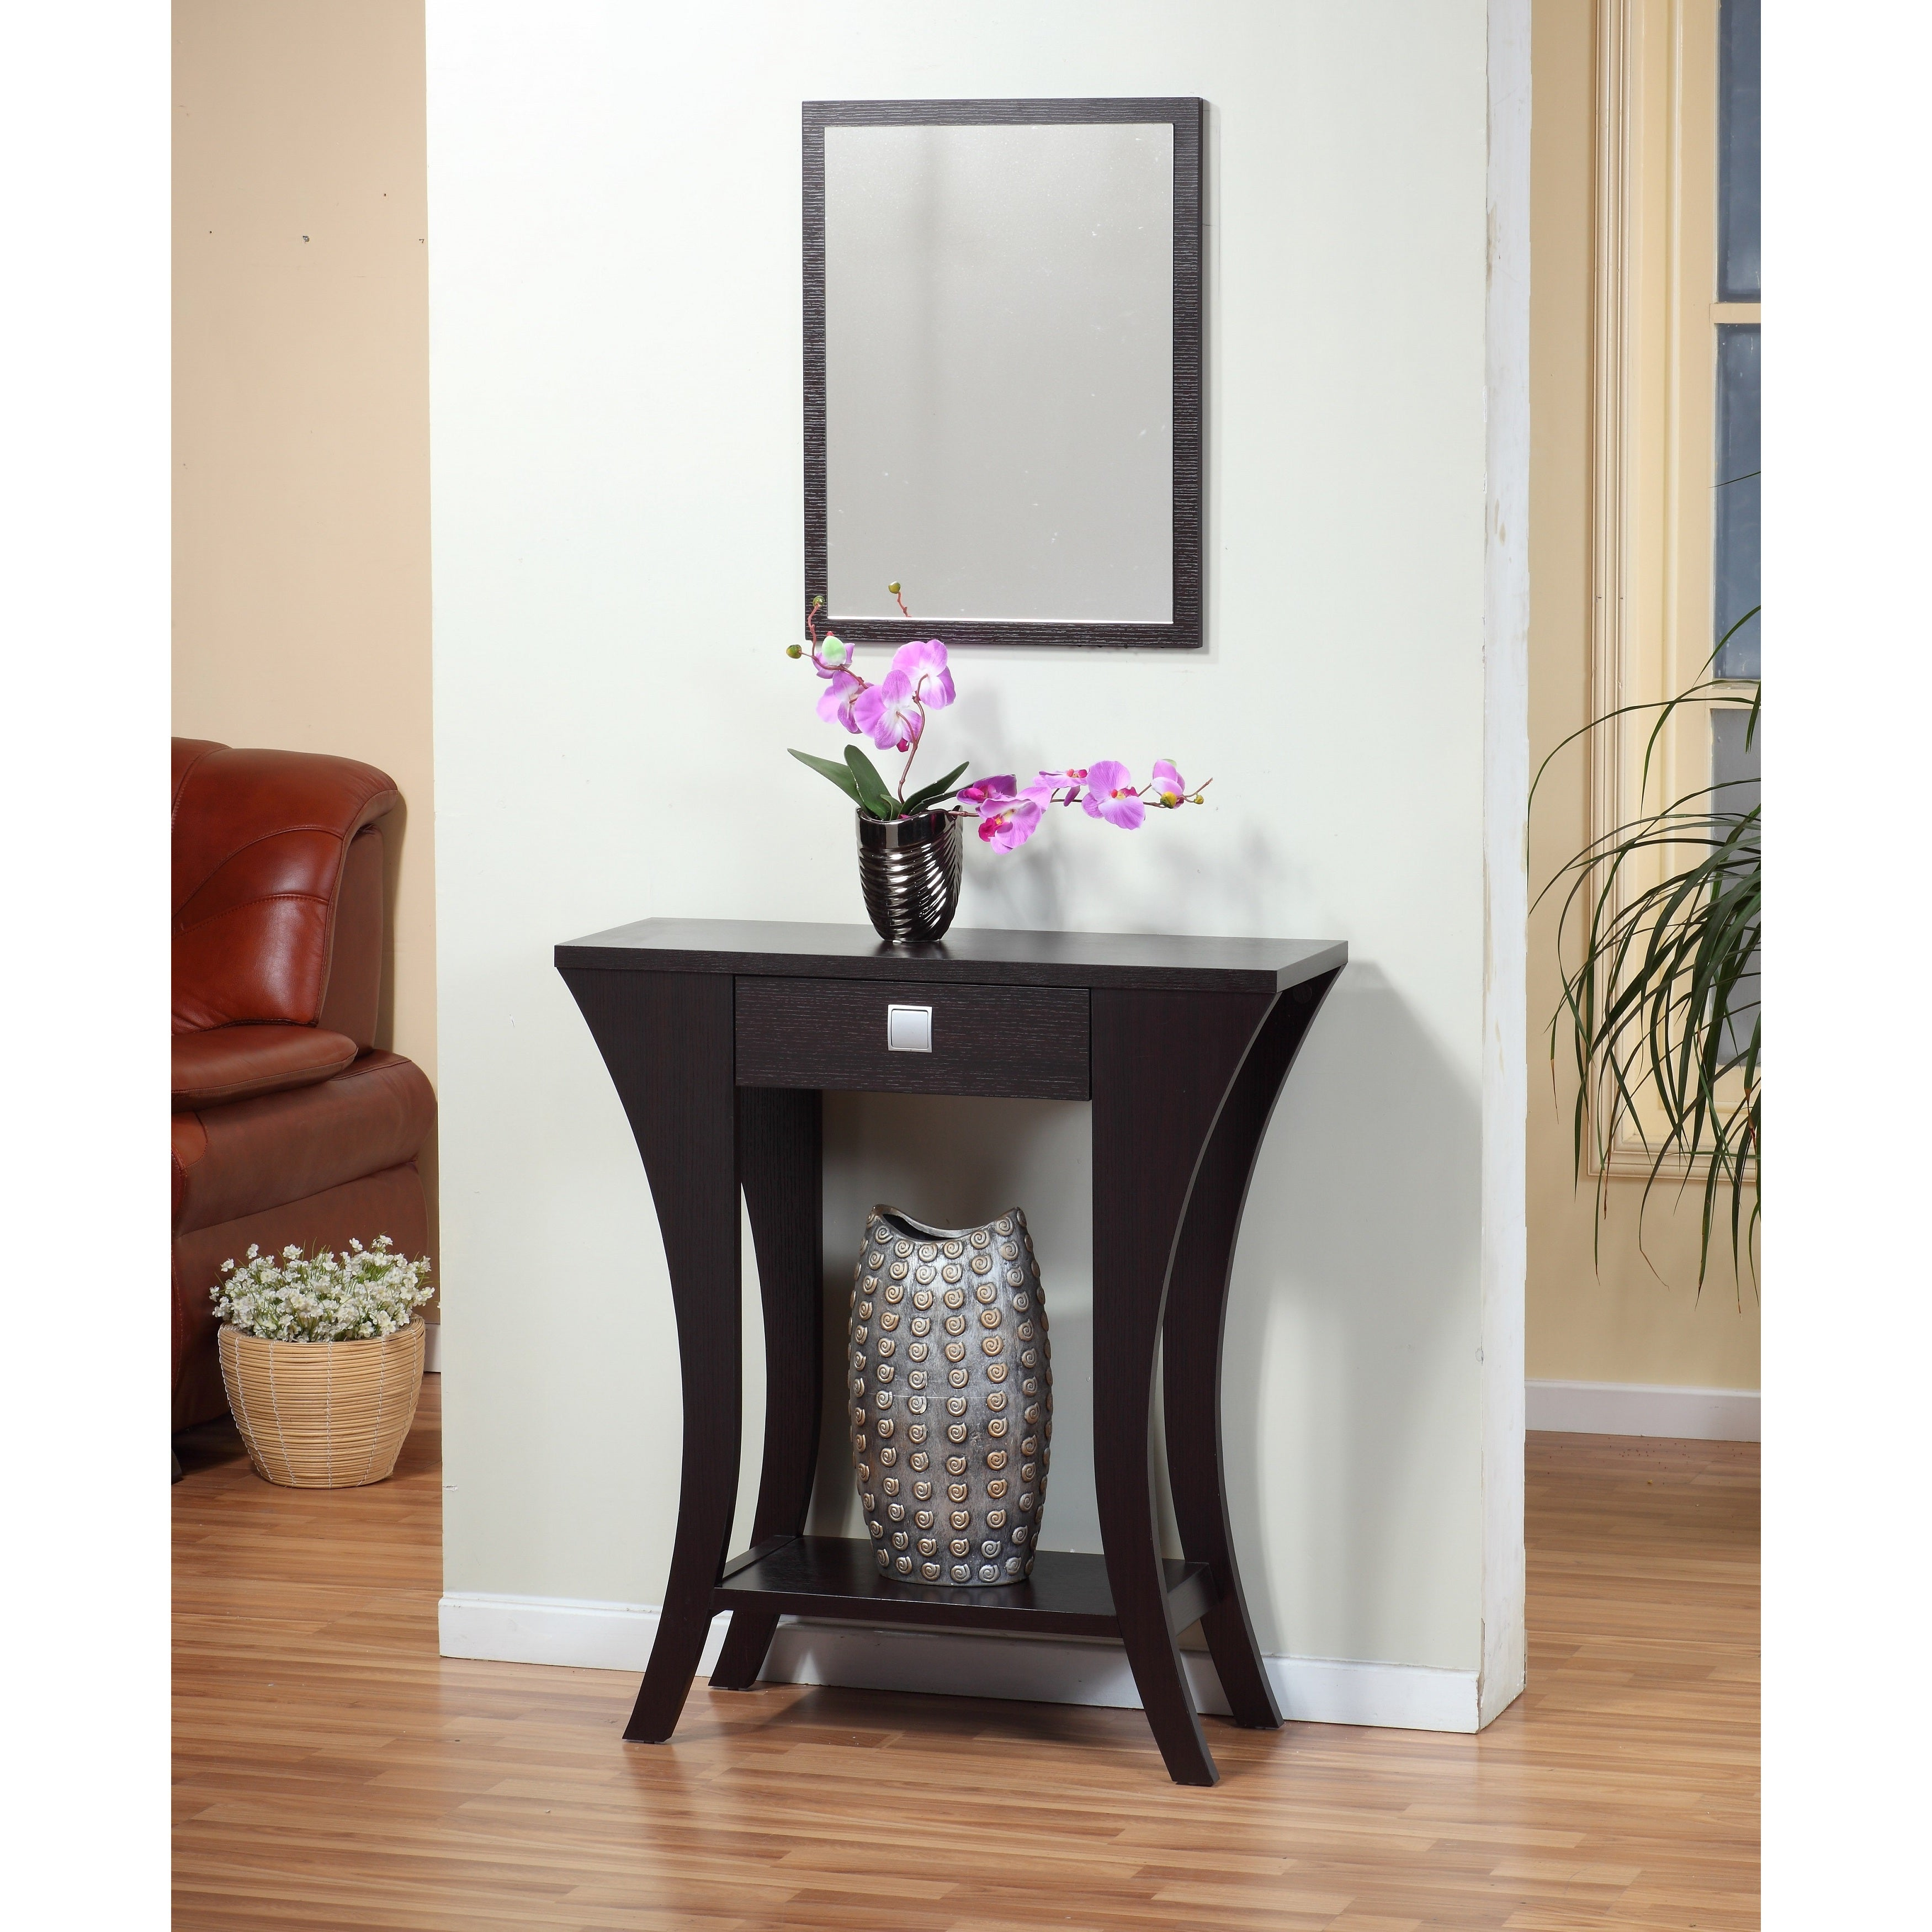 Cuccino Finish Sofa Entry Console Table With Drawer Free Shipping Today 8983987